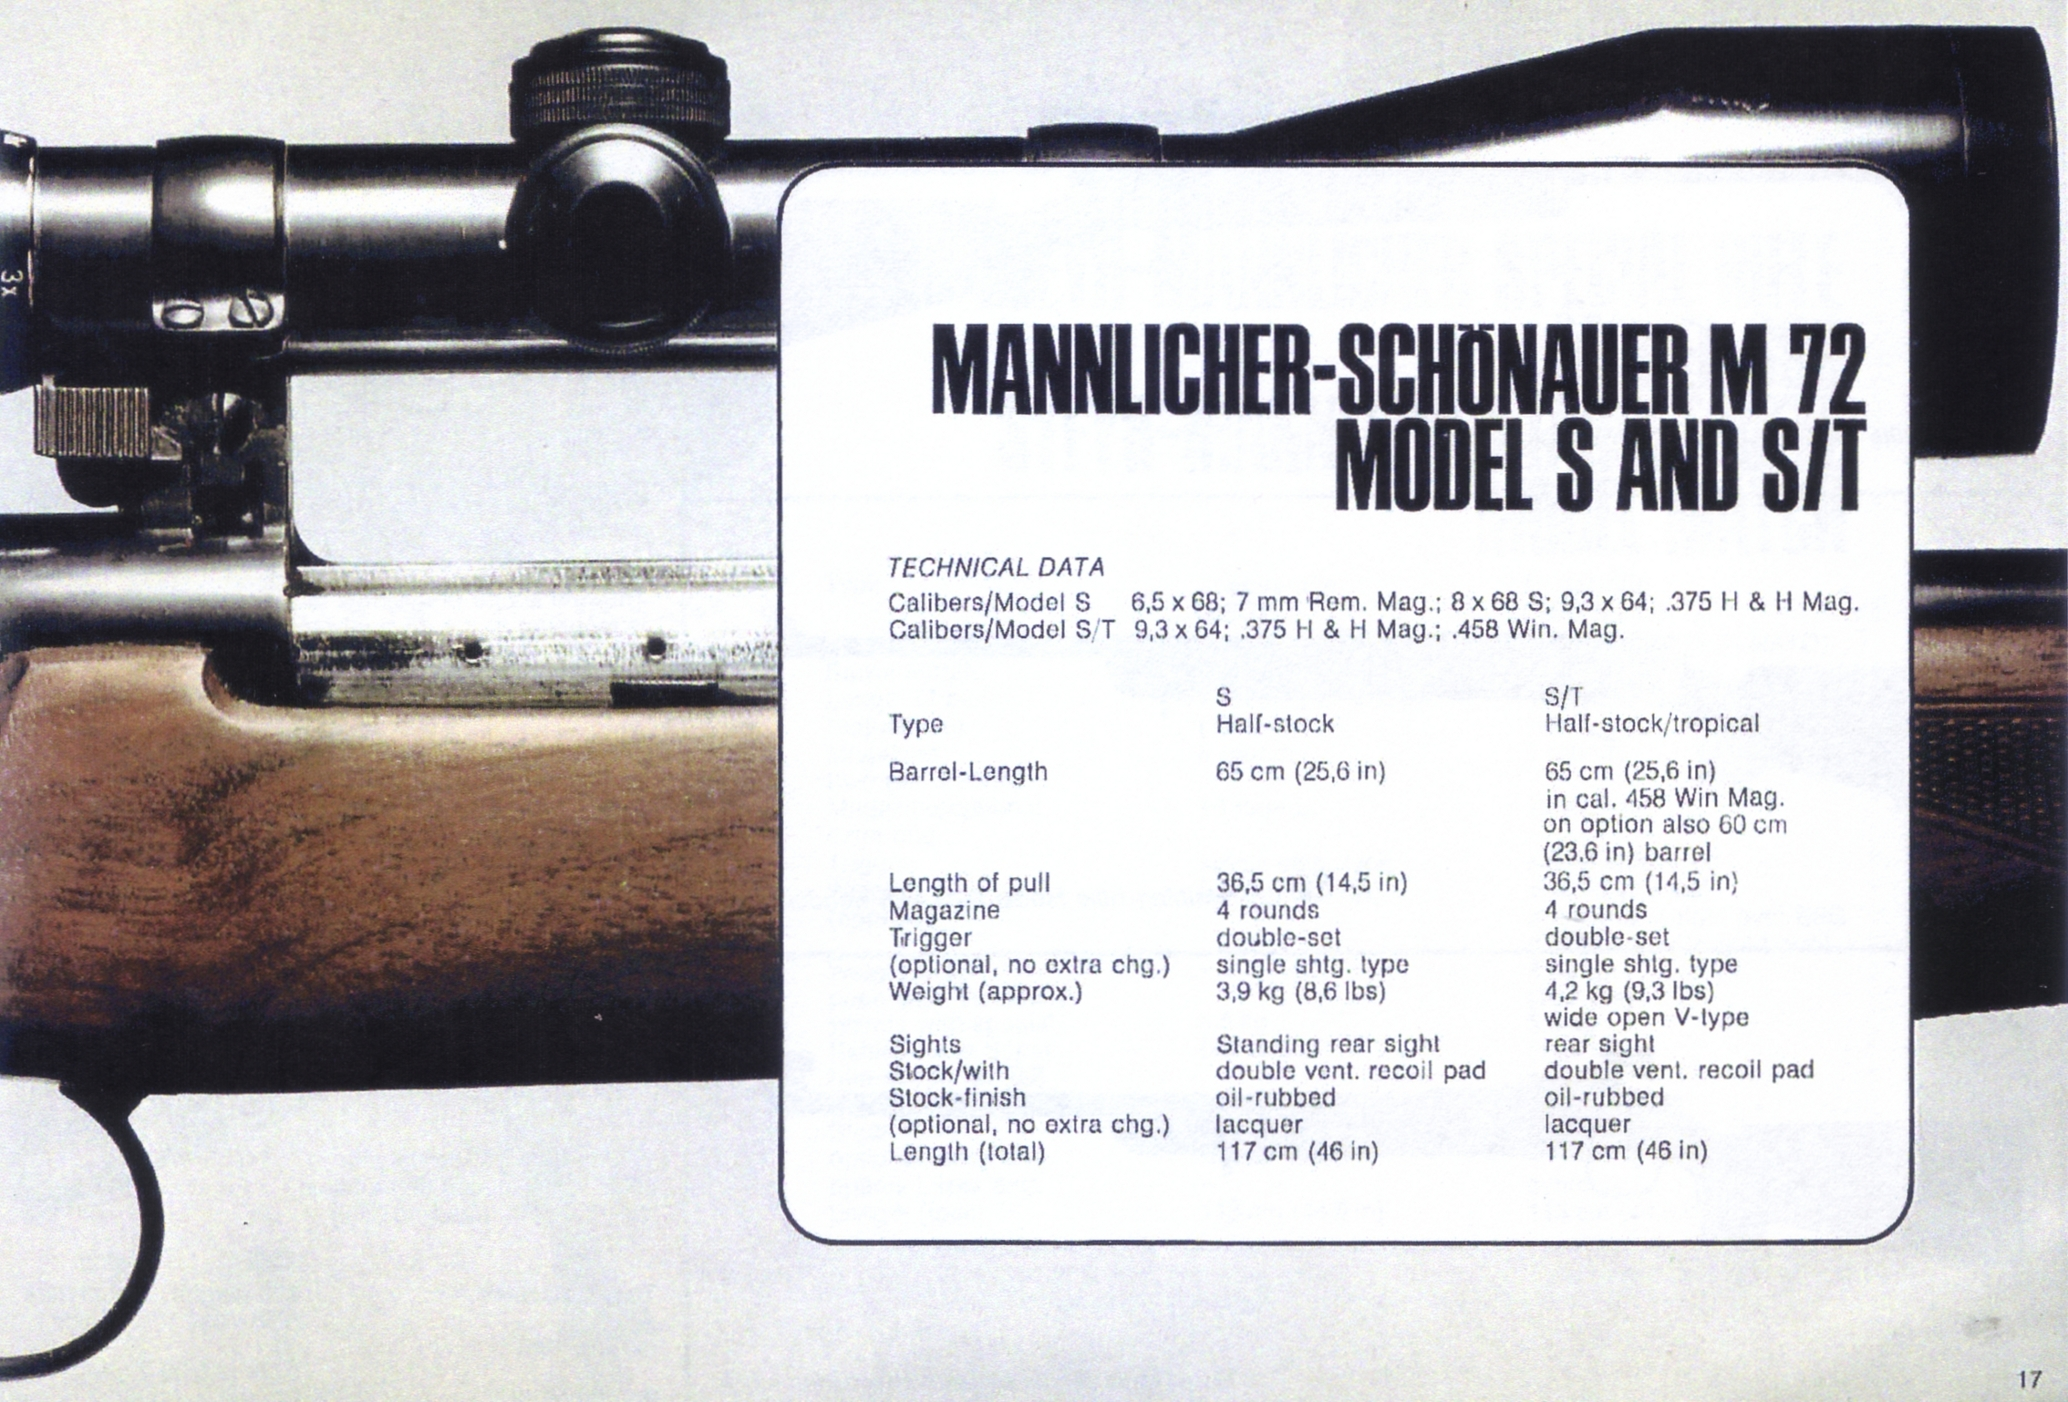 The Mannlicher-Schönauer M72 Model S and Model S/T specifications, calibers and other options. (Picture from the original Steyr catalog and courtesy of Steyr.)